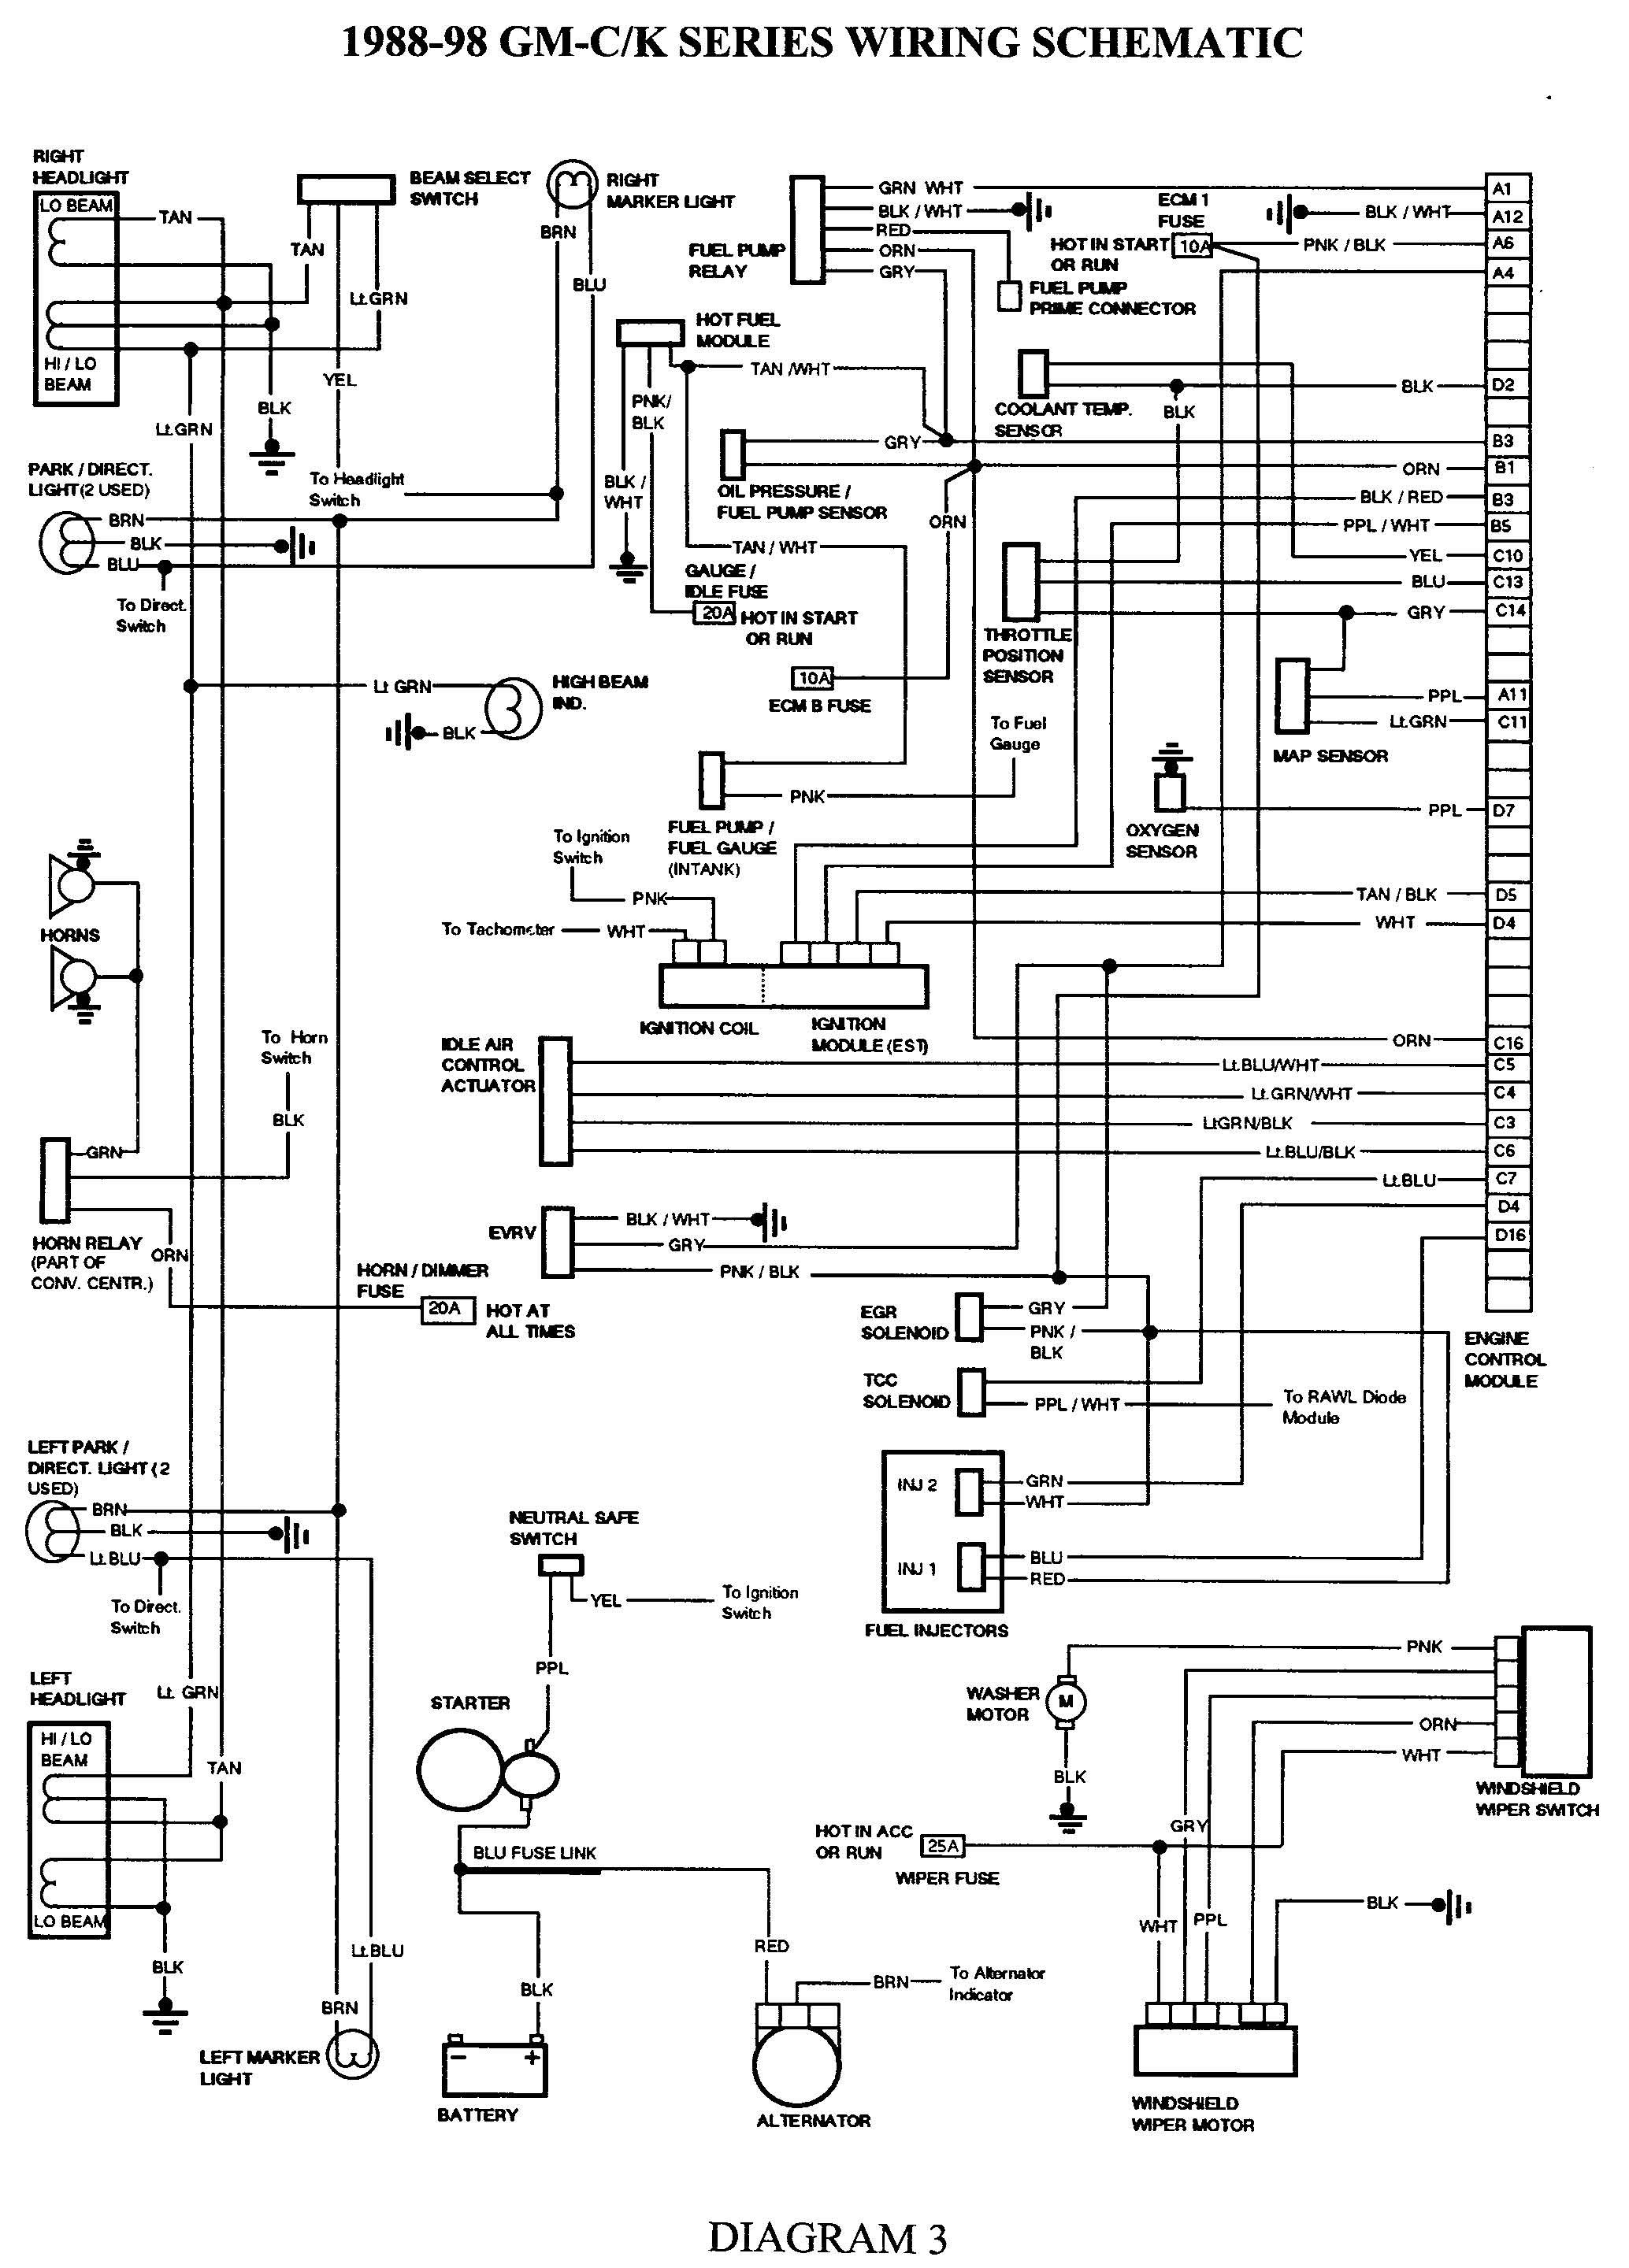 gm map sensor wiring diagram free download wiring diagram post gmc wiring diagram new wiring diagram [ 2068 x 2880 Pixel ]